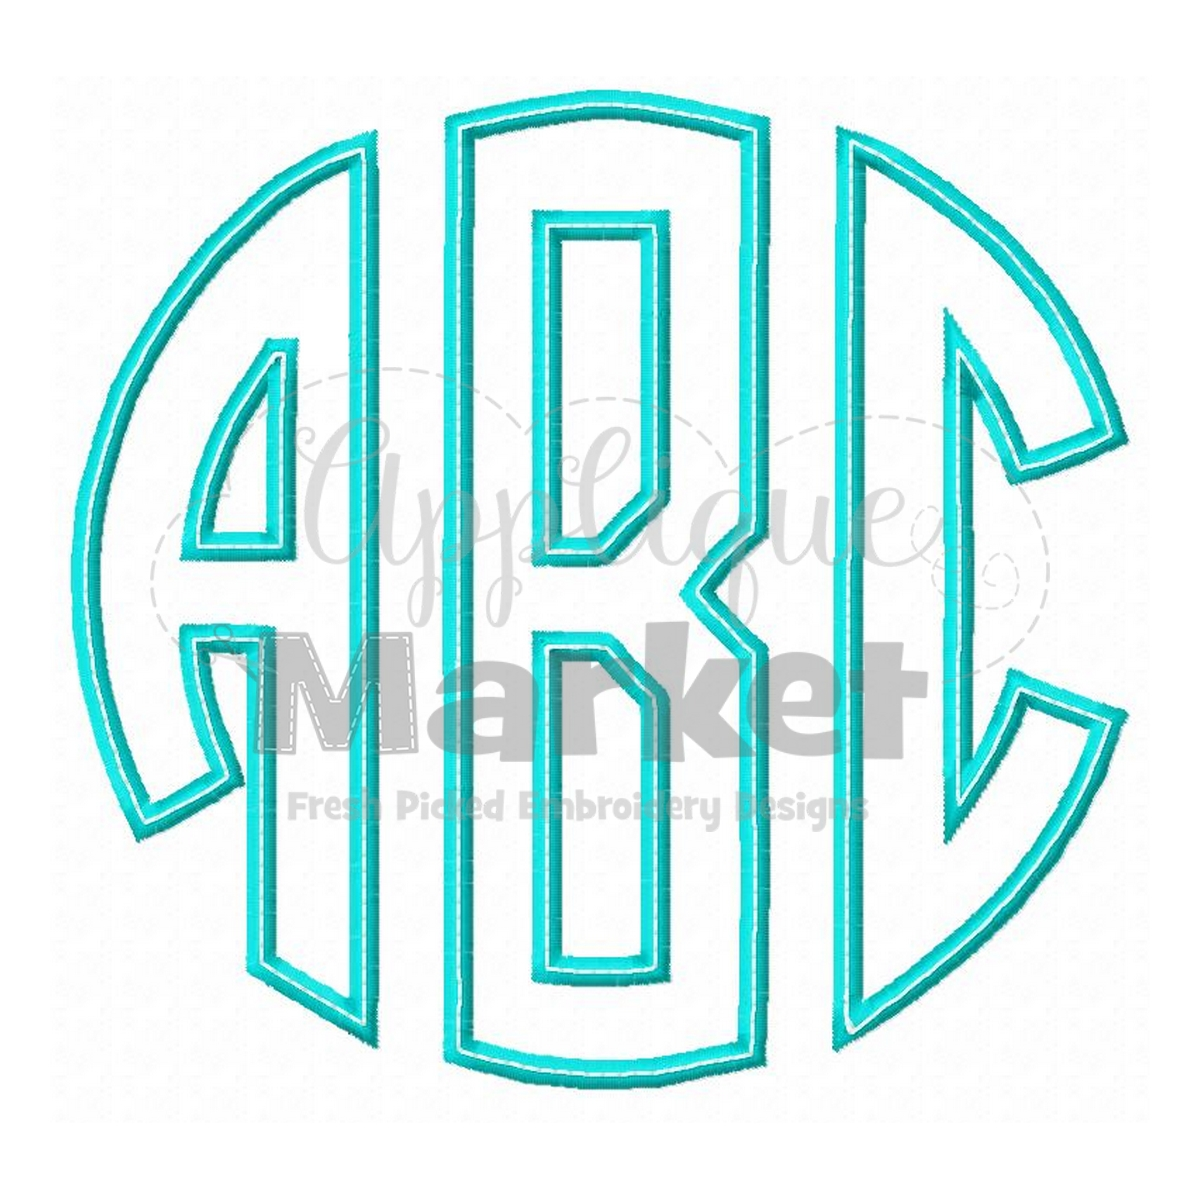 Applique Circle Monogram Applique